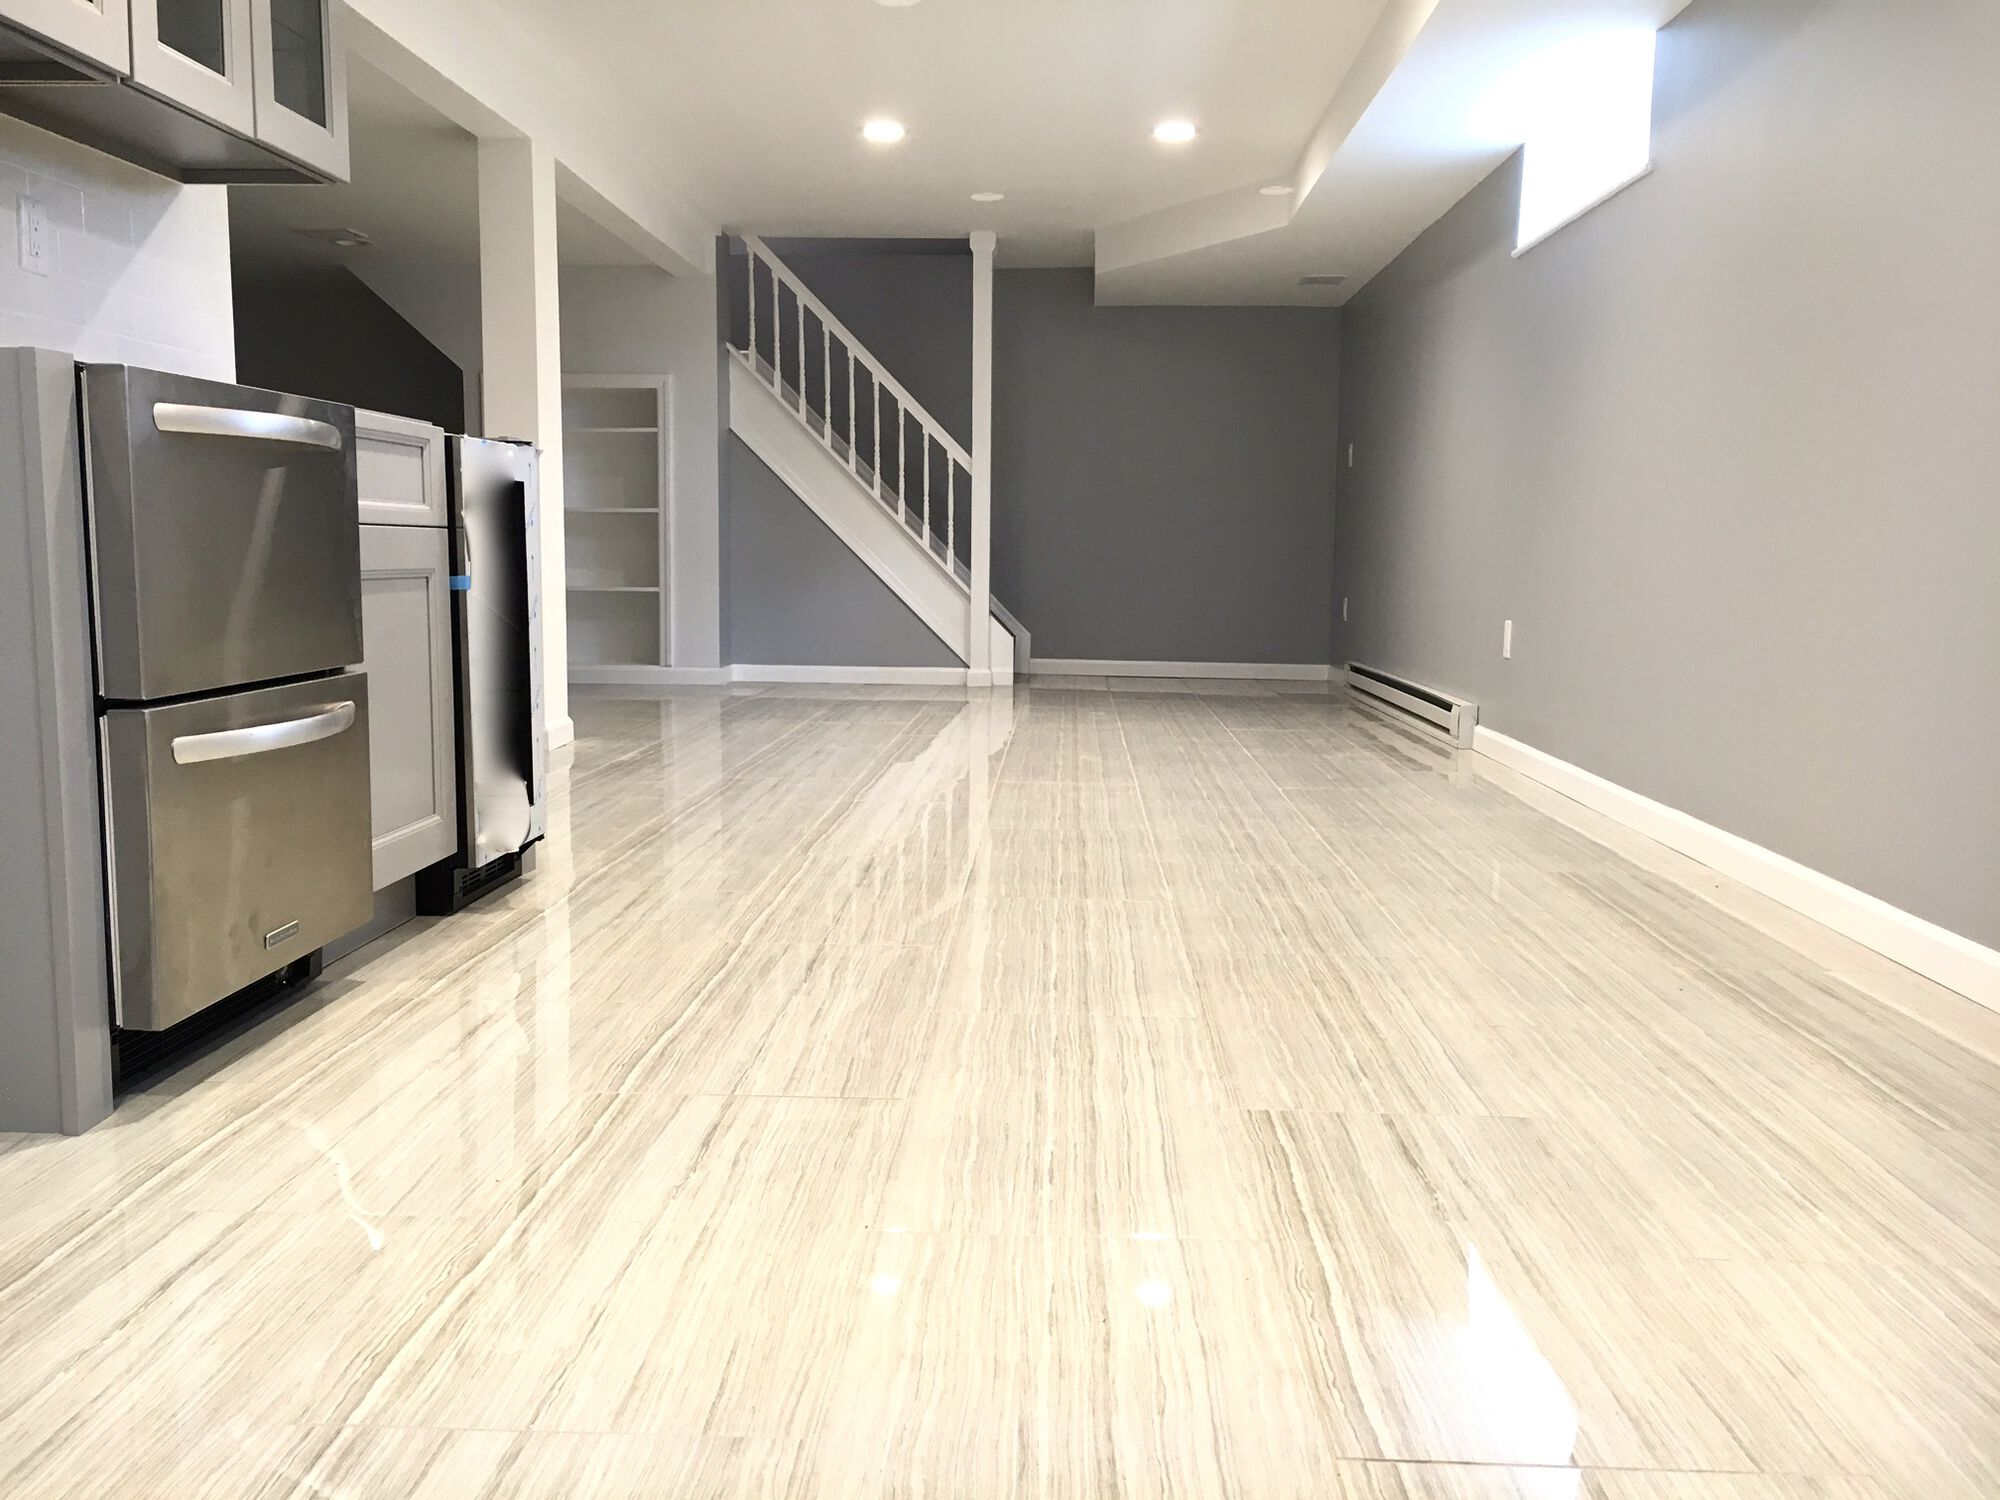 Basement Remodeling with Porcelain Tile Flooring, Kitchenette and Built In Storage in Clifton, Passaic County NJ